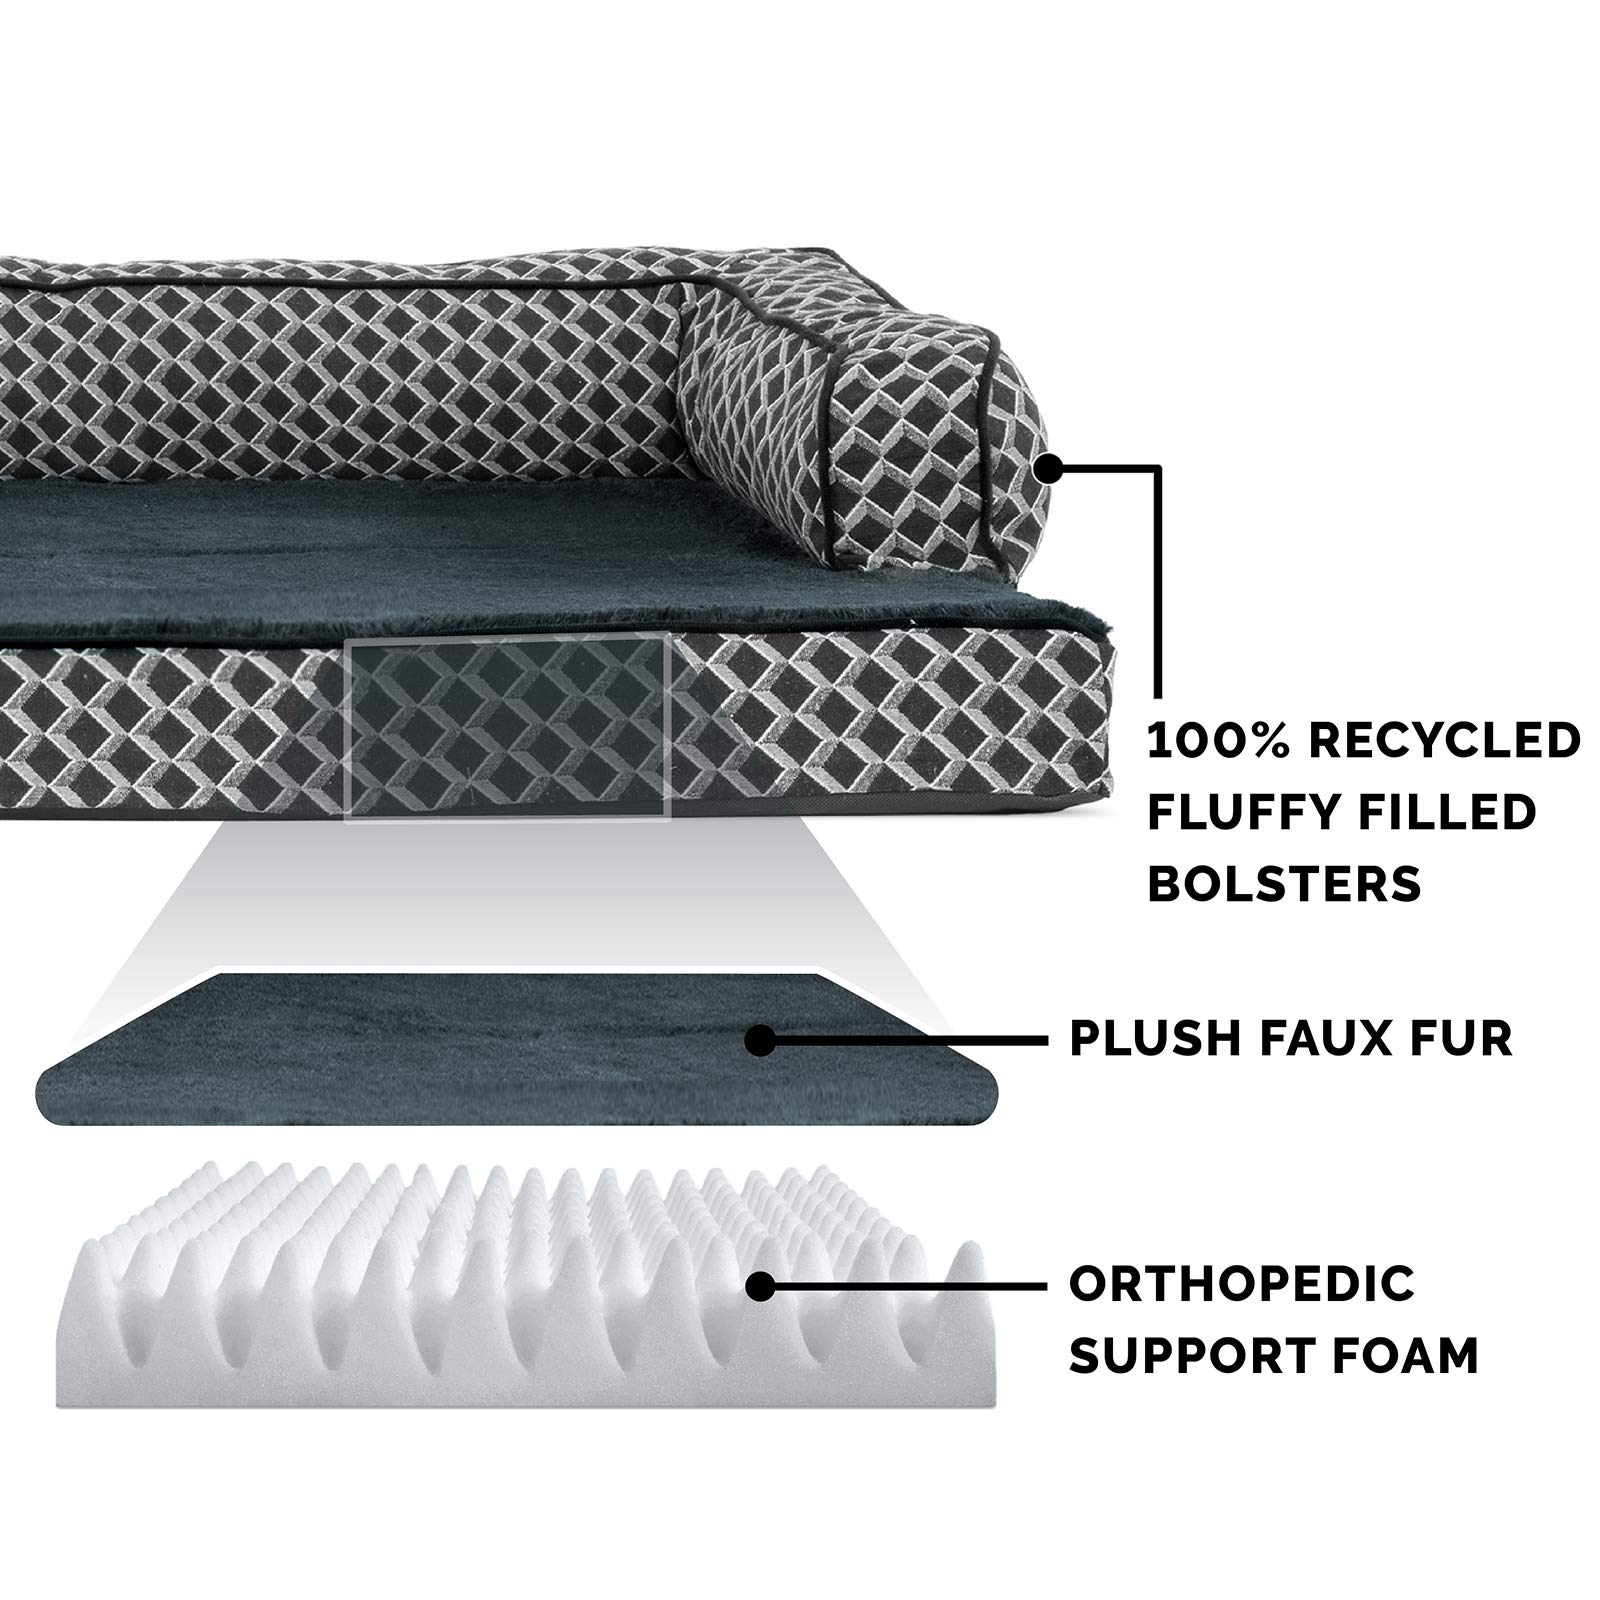 FurHaven Pet Dog Bed | Orthopedic Plush & Décor Comfy Couch Sofa-Style Pet Bed for Dogs & Cats, Diamond Gray, Jumbo by Furhaven Pet (Image #4)